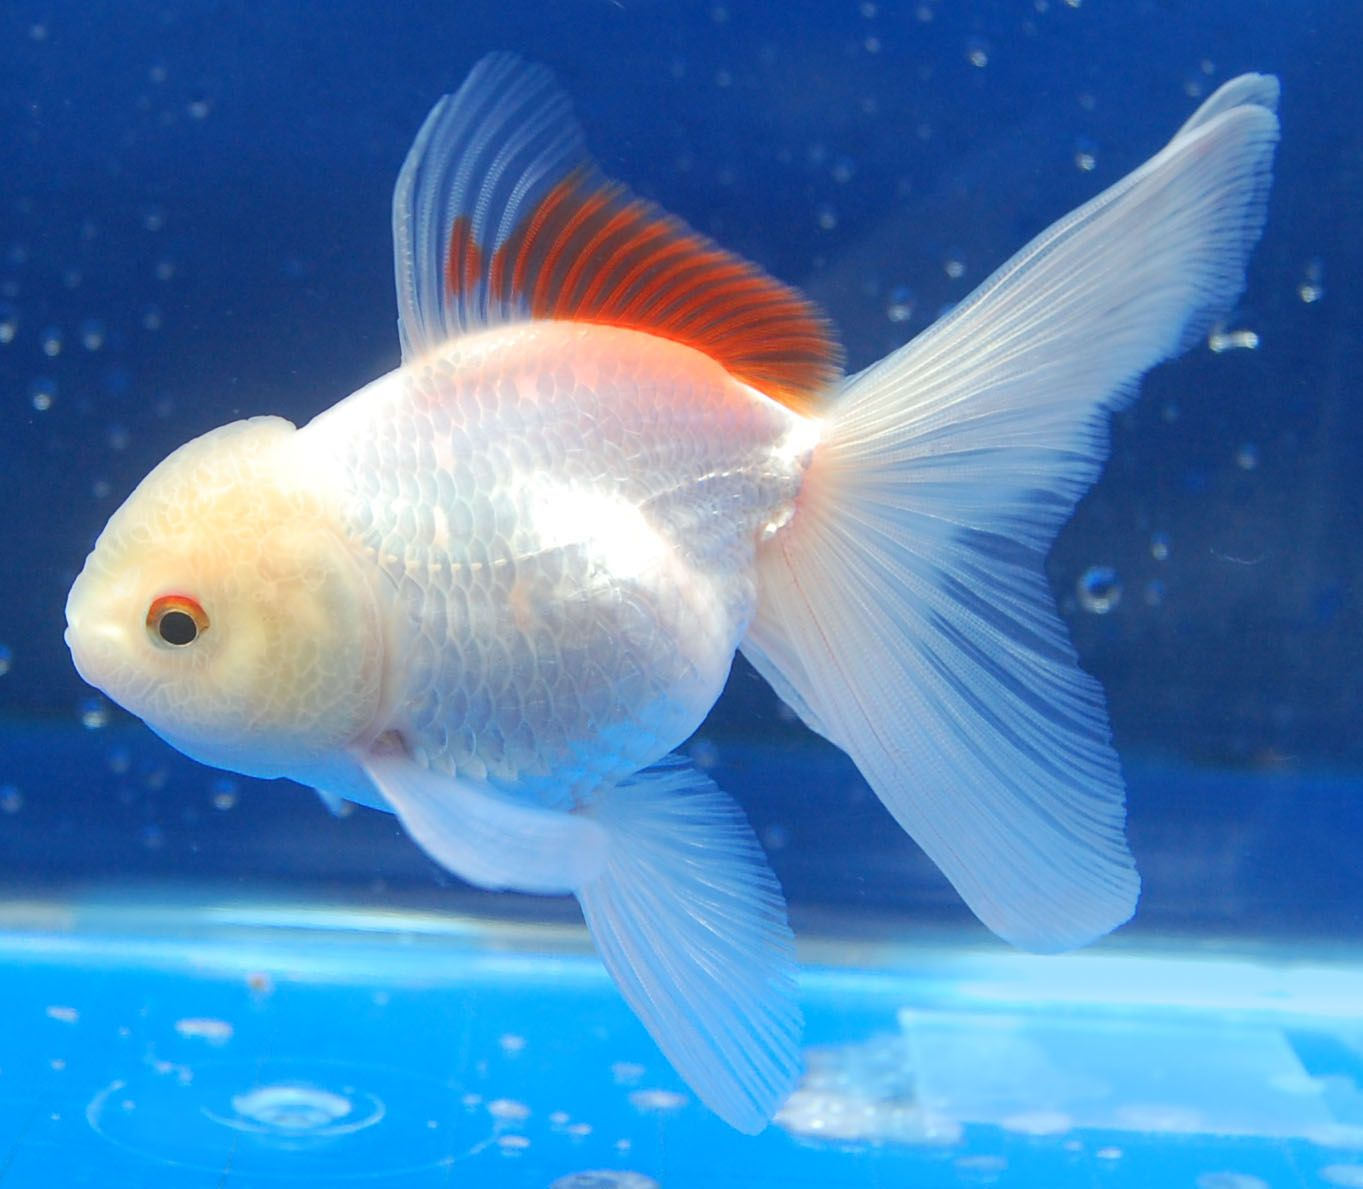 White Oranda Goldfish Pets Aquariums Tank Peixes Ornamentais Kinguio Peixes